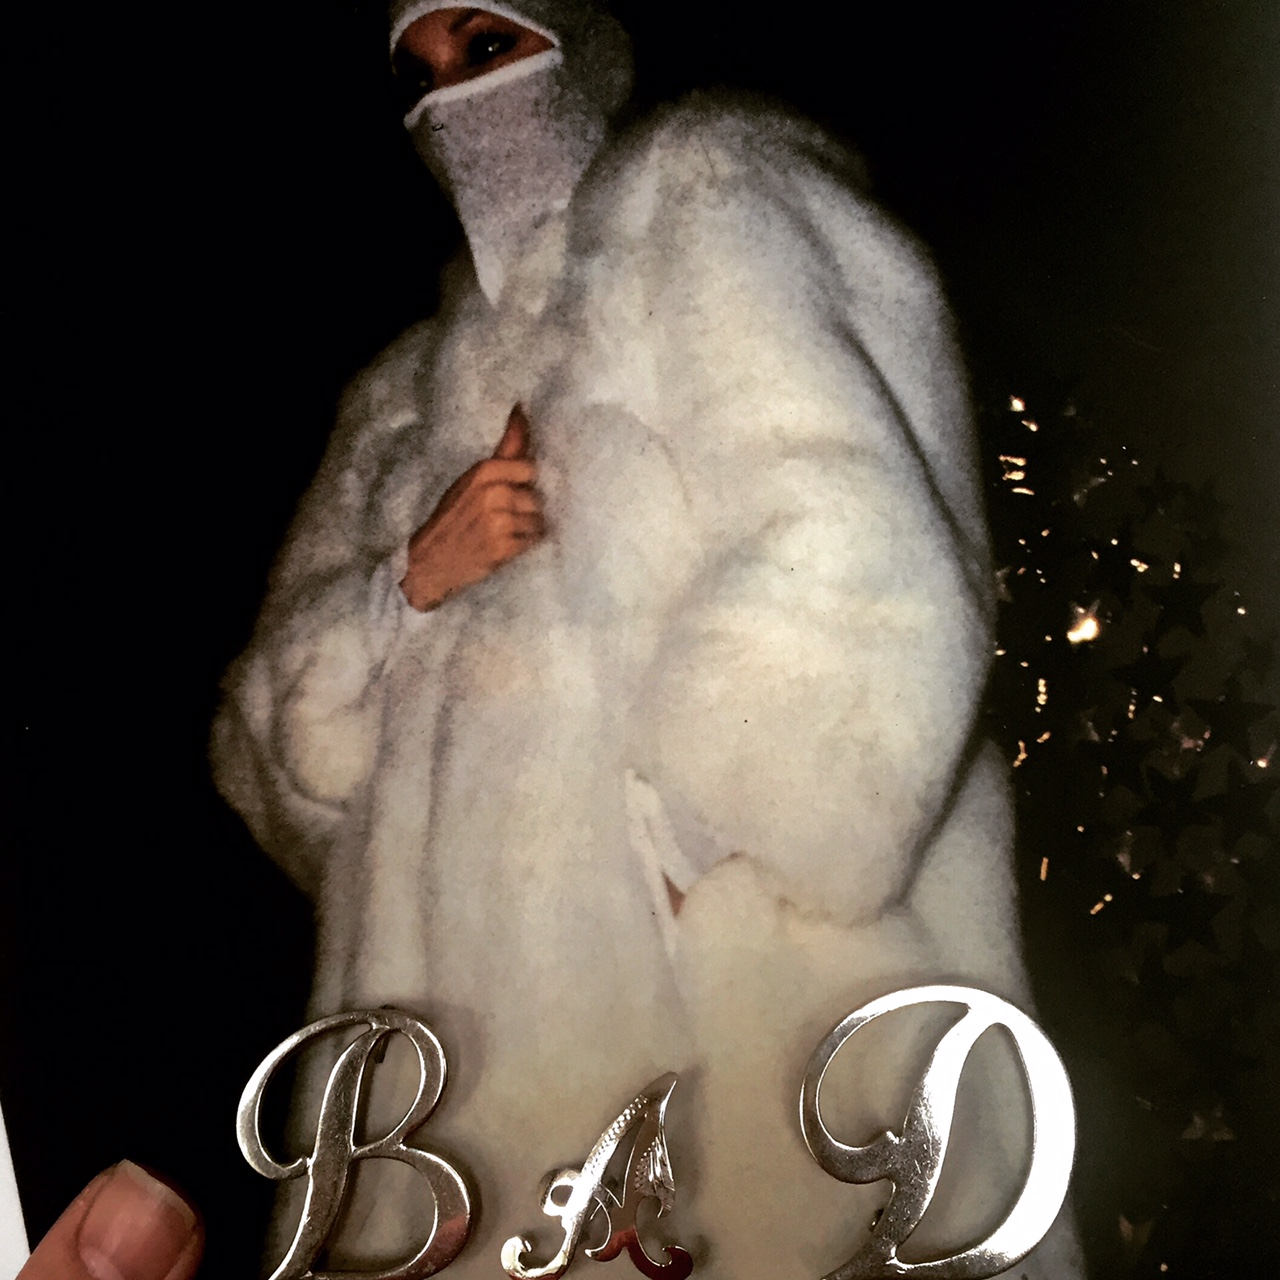 'Bad' from Mimi Berlin's VintageDeluxe Fashion Accessories Artworks #1